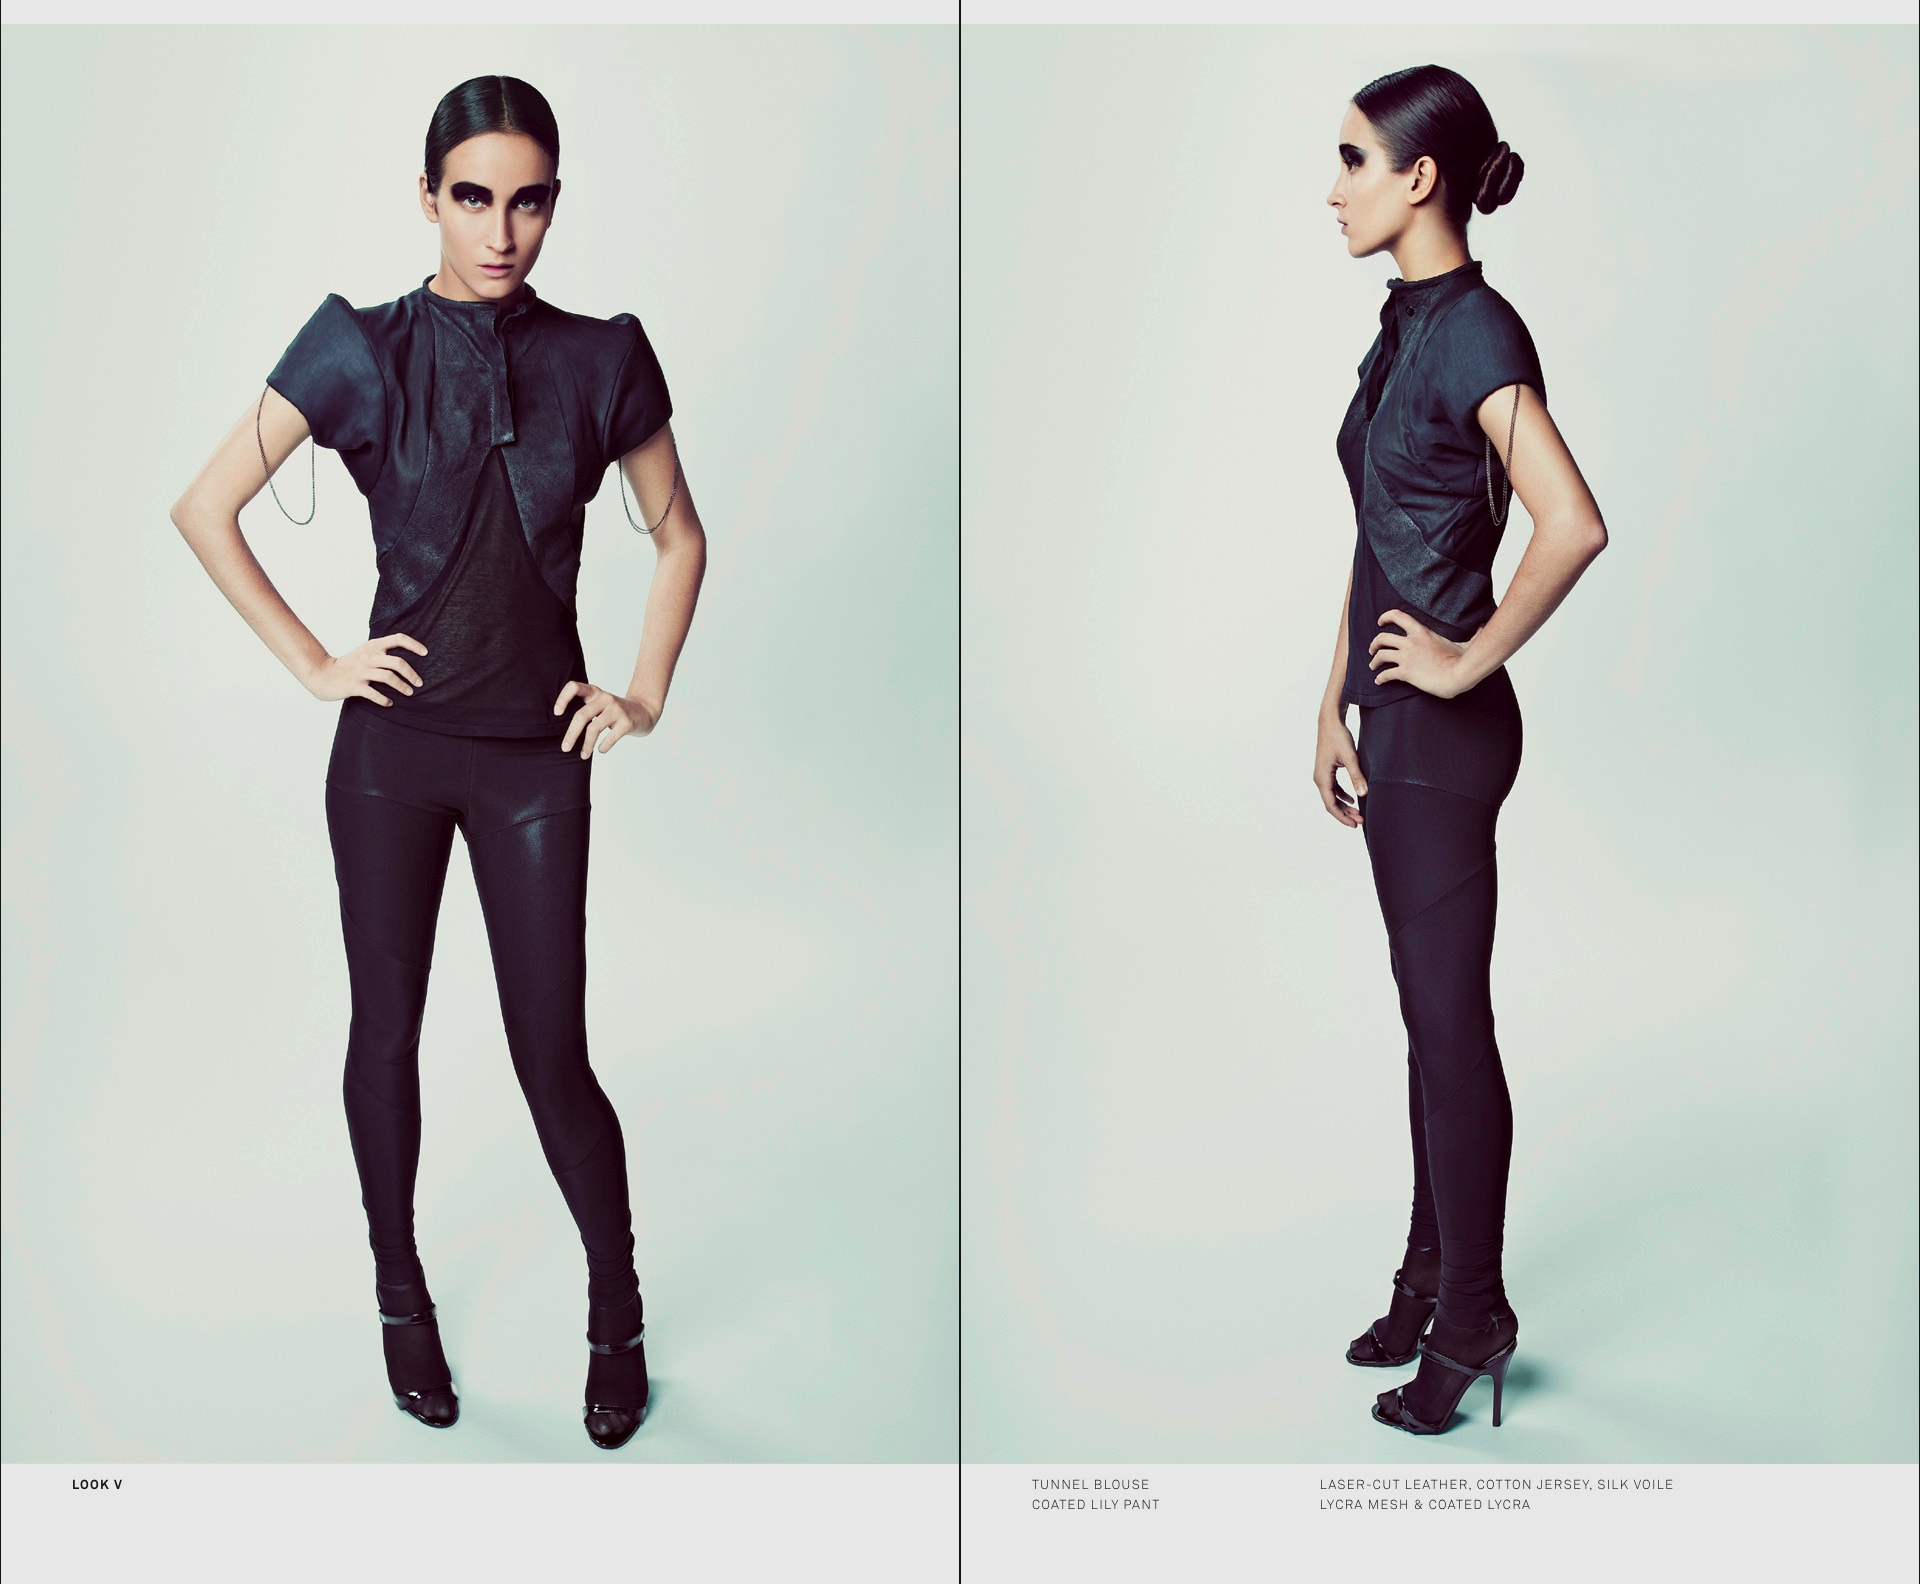 katie gallagher ss2010 look book tights After a small reconstruction one lesbian in the same areas opened gay club ...